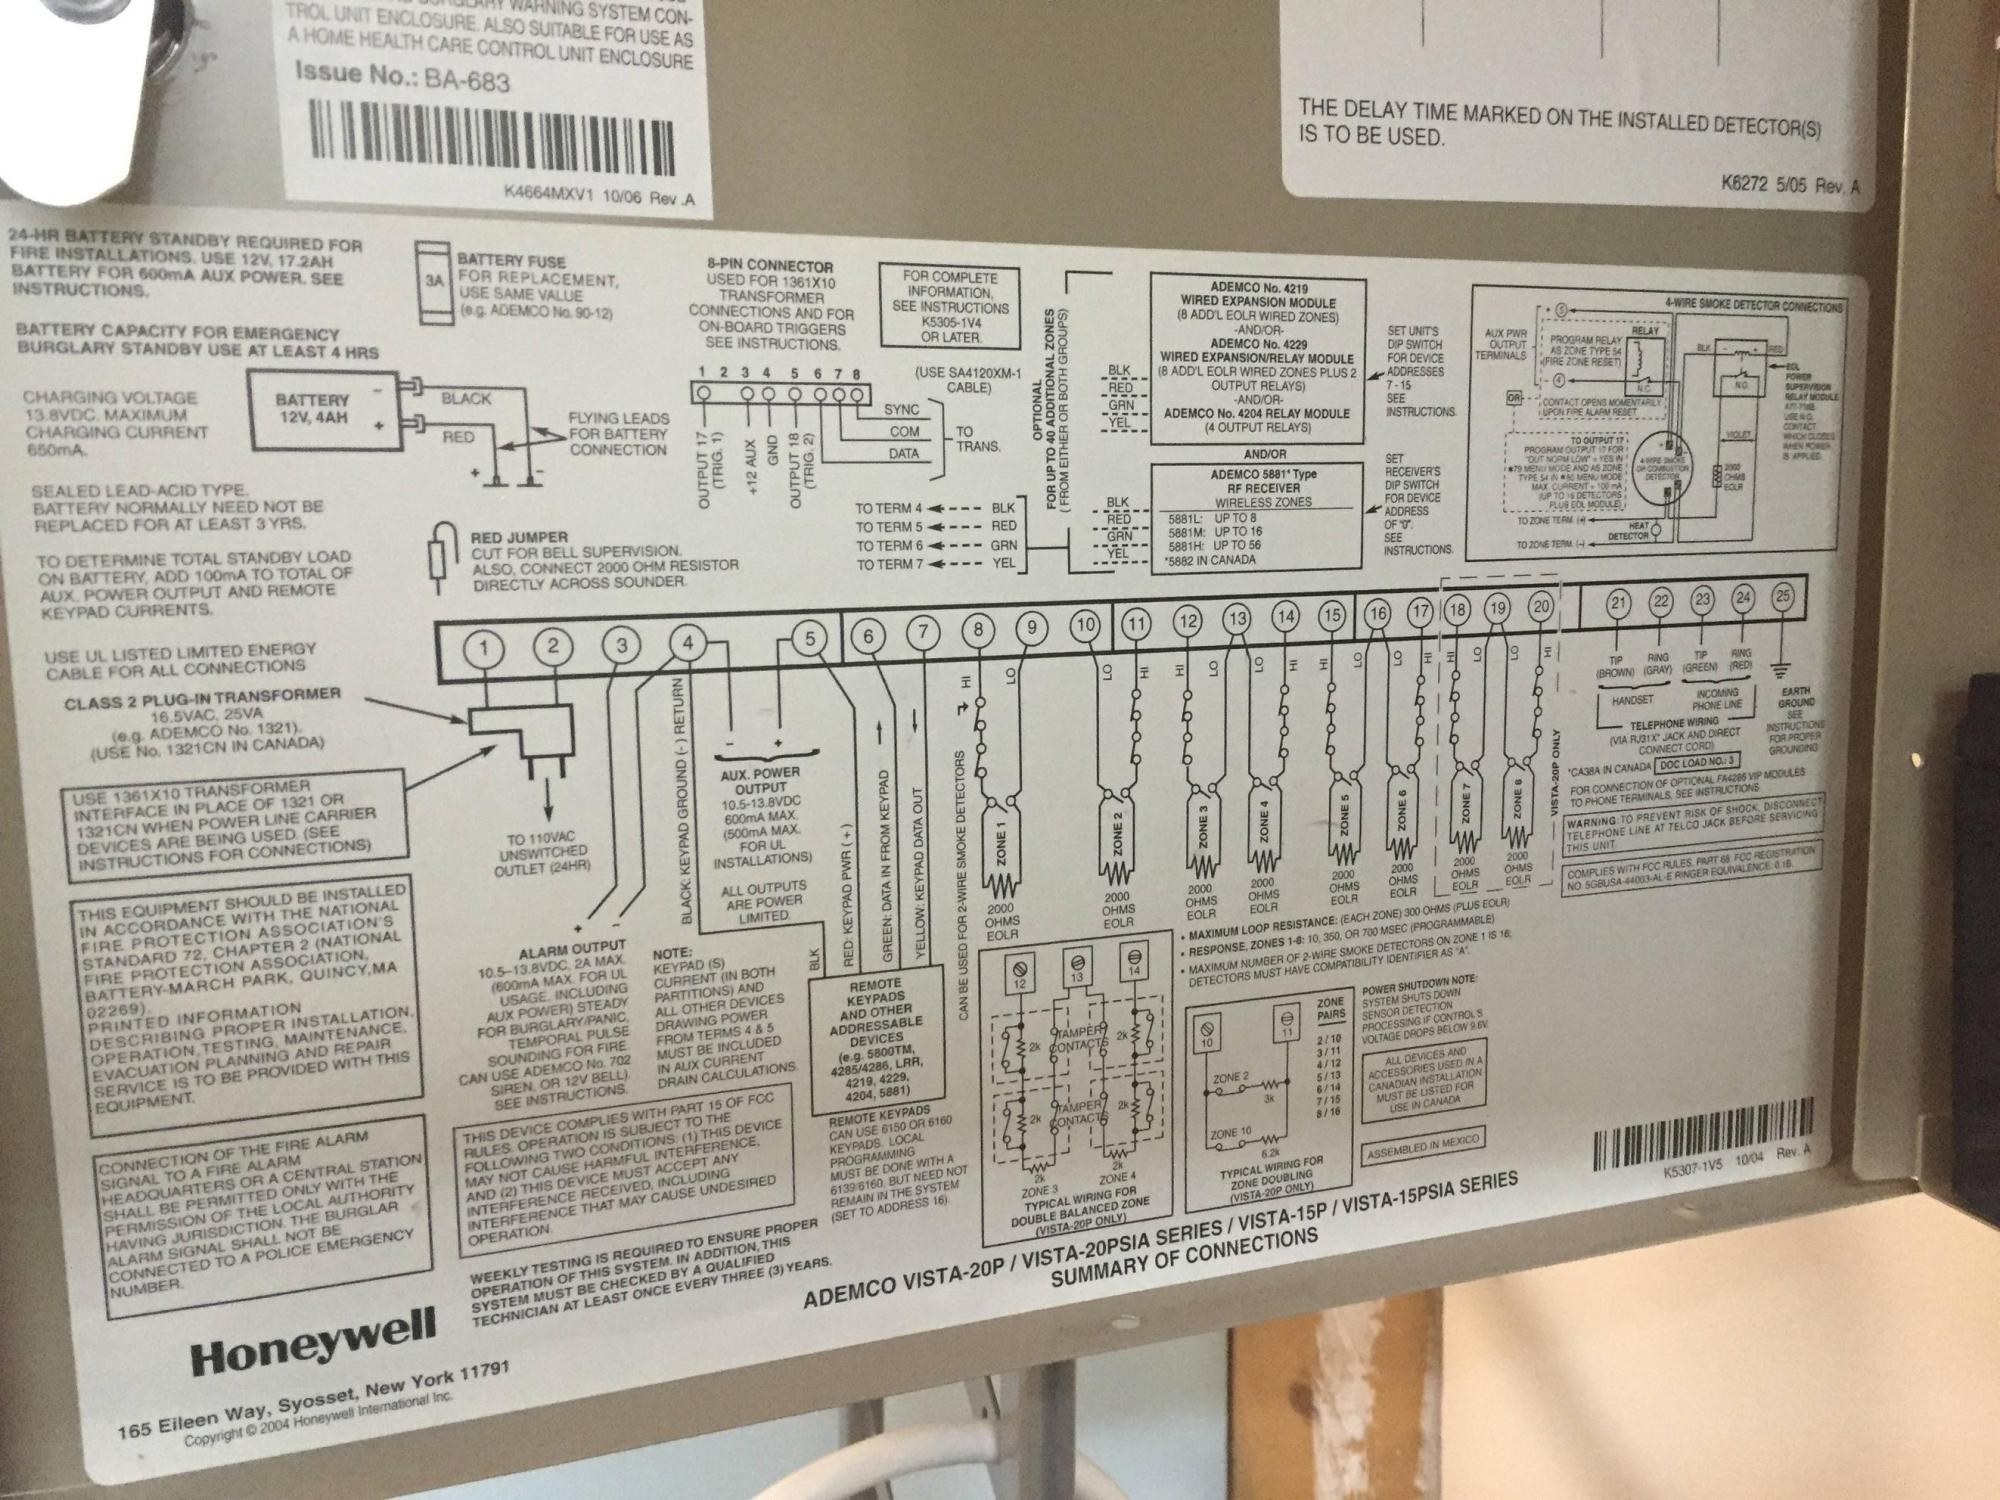 hight resolution of interfacing raspberry pi to honeywell alarm system 3v vs 12v honeywell addressable fire alarm system wiring diagram honeywell alarm system wiring diagrams